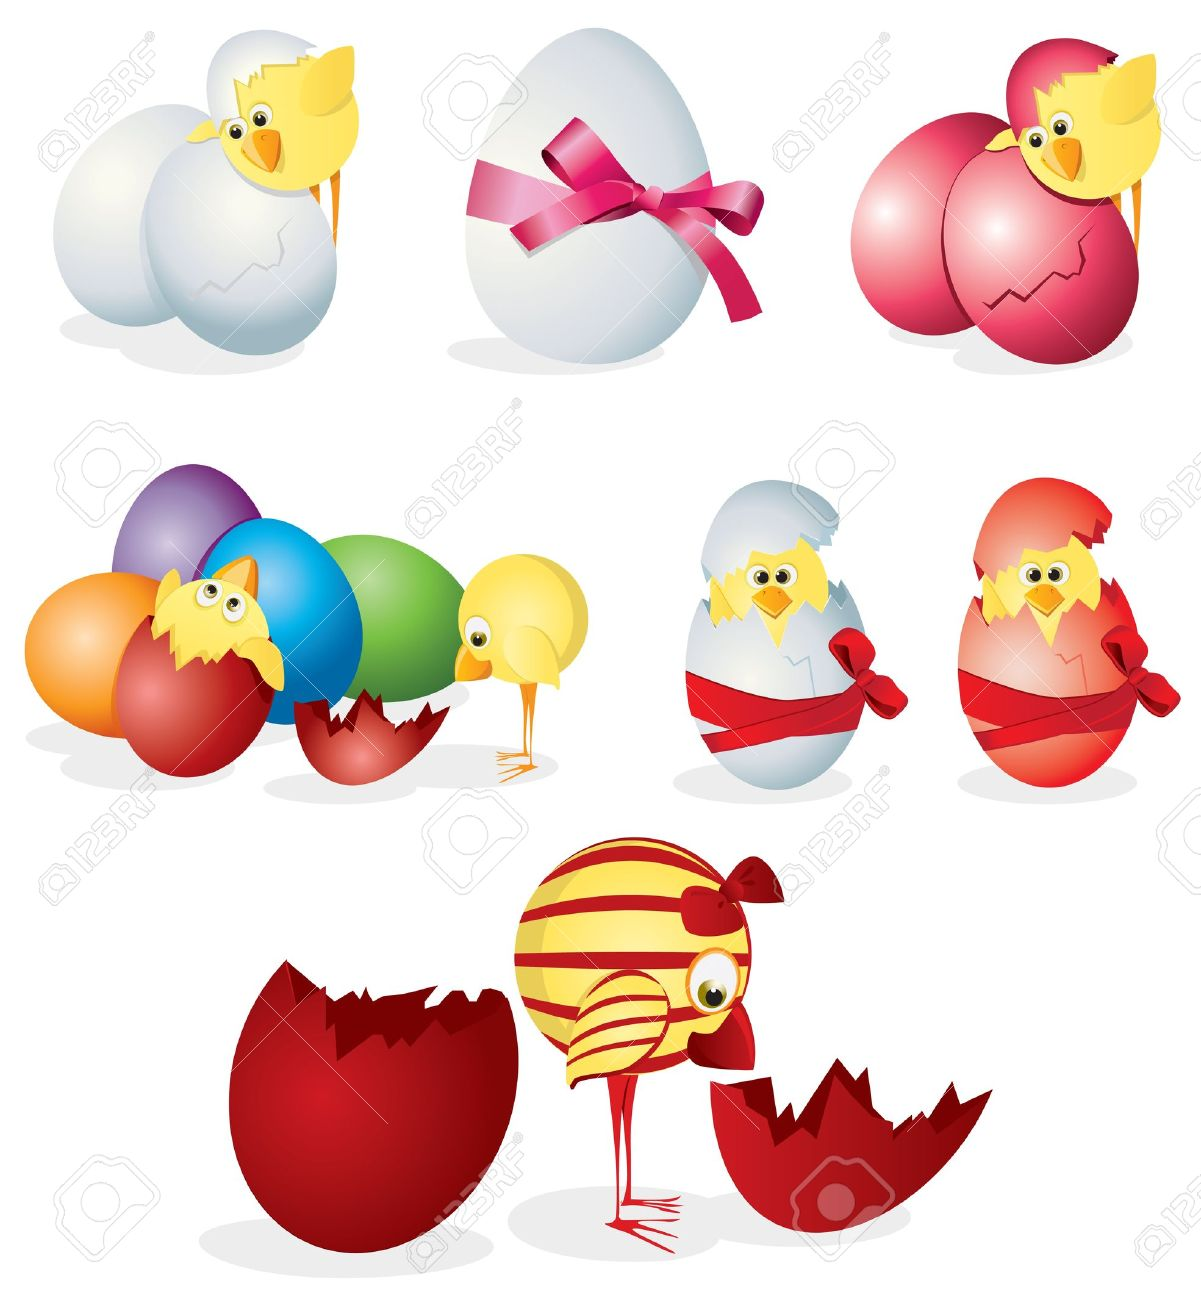 Baby Chicks Clipart